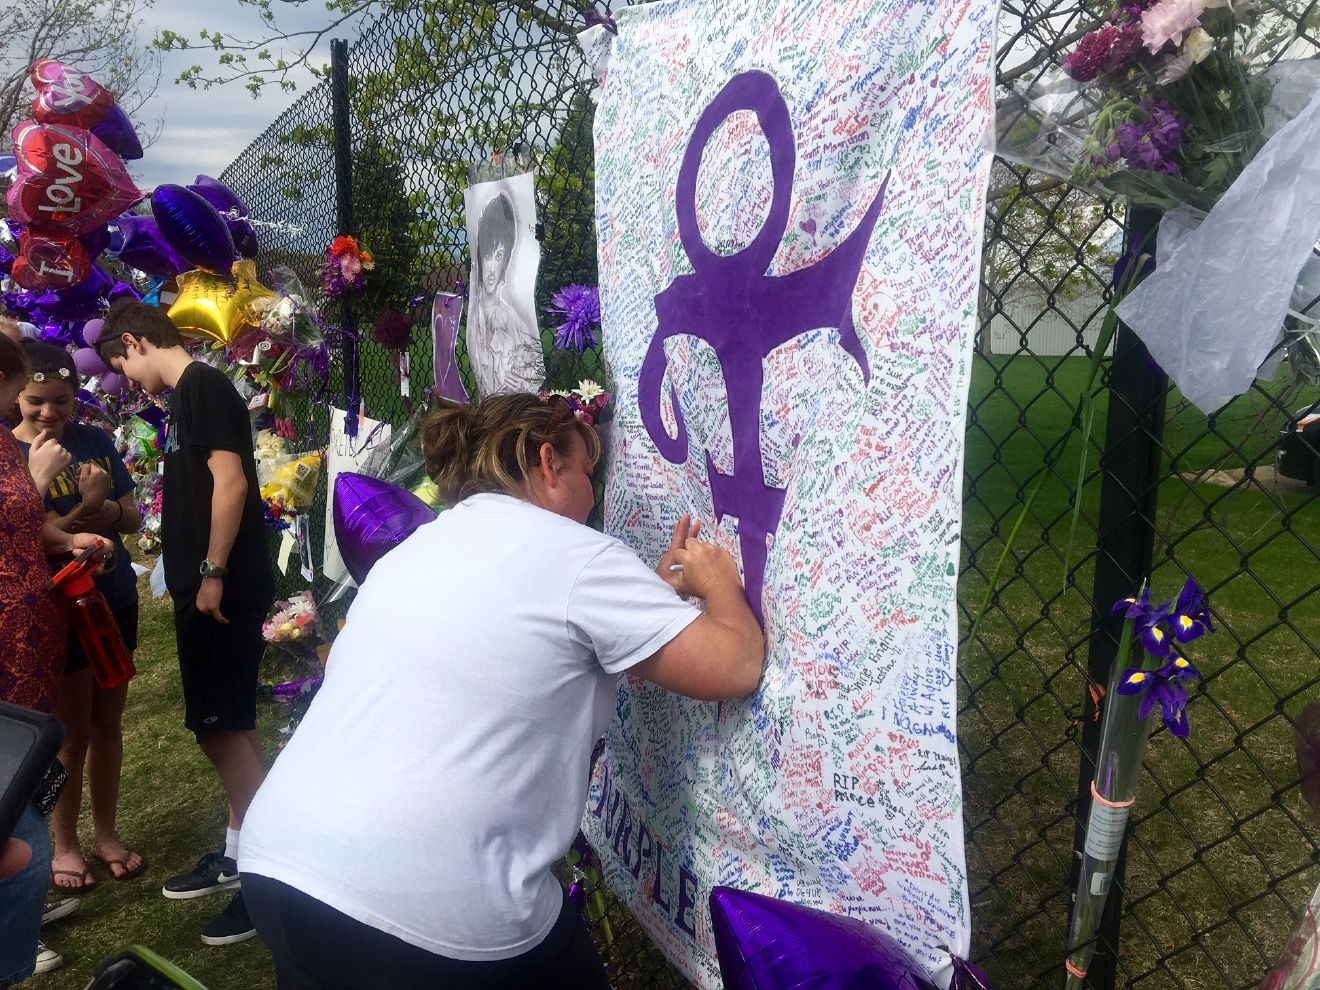 A woman writes on memorial sheet adorned with the symbol Prince once used to identify himself outside Paisley Park in Chanhassen, Minn., Saturday, April 23, 2016. The music superstar was pronounced dead at his Paisley Park estate near Minneapolis on Thursday. He was 57. (AP Photo/Jeff Baenen)